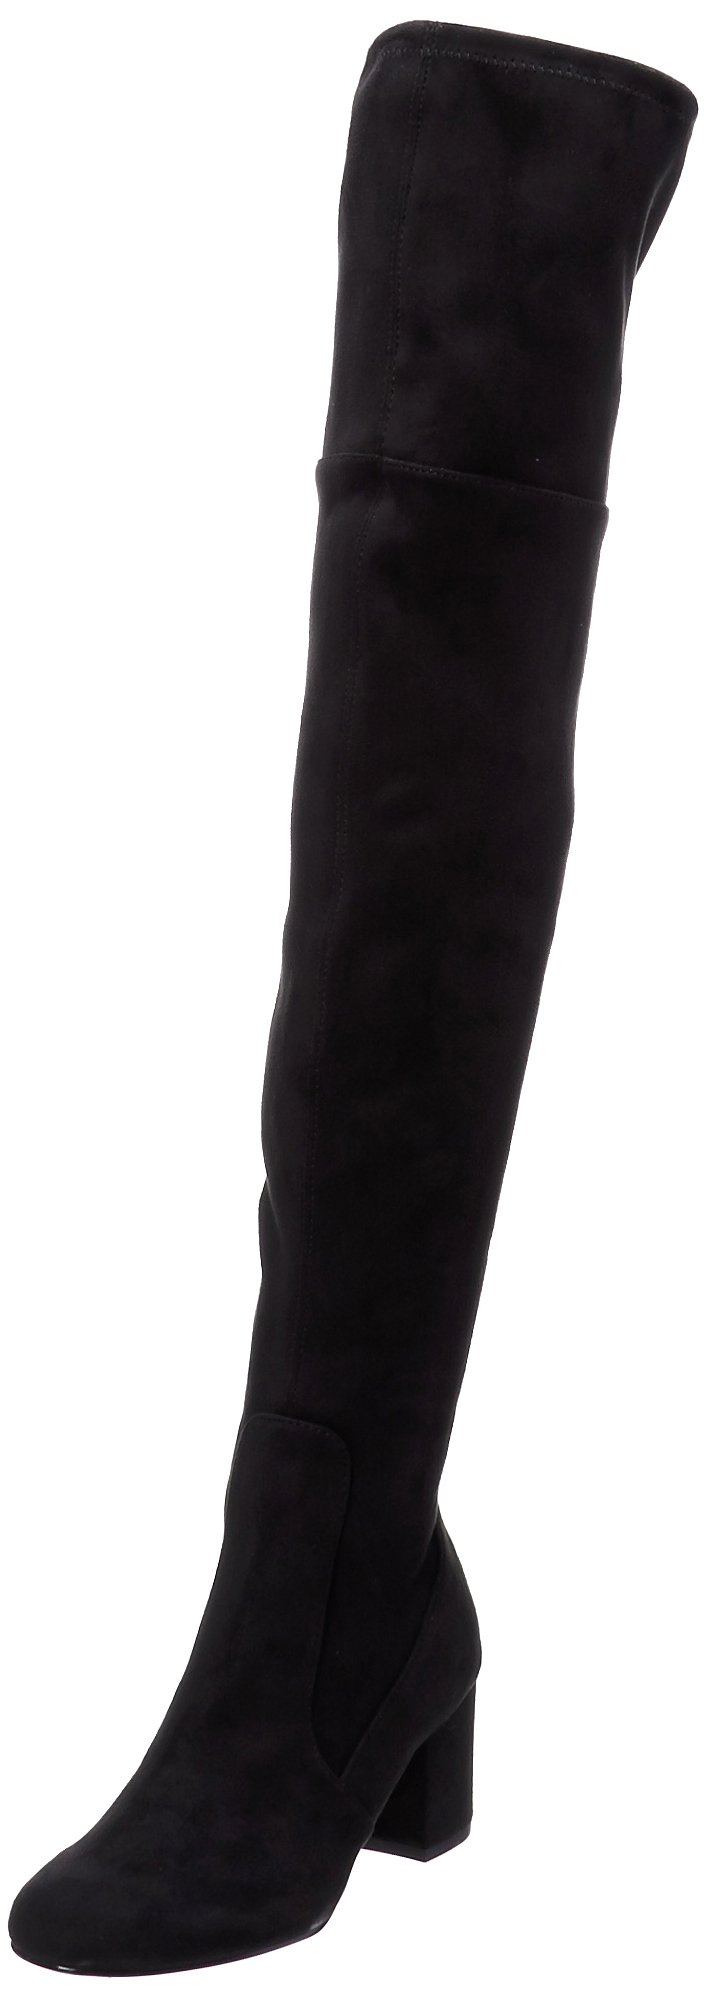 Sam Edelman Women's Varona Over The Knee Boot, Black, 6.5 Medium US by Sam Edelman